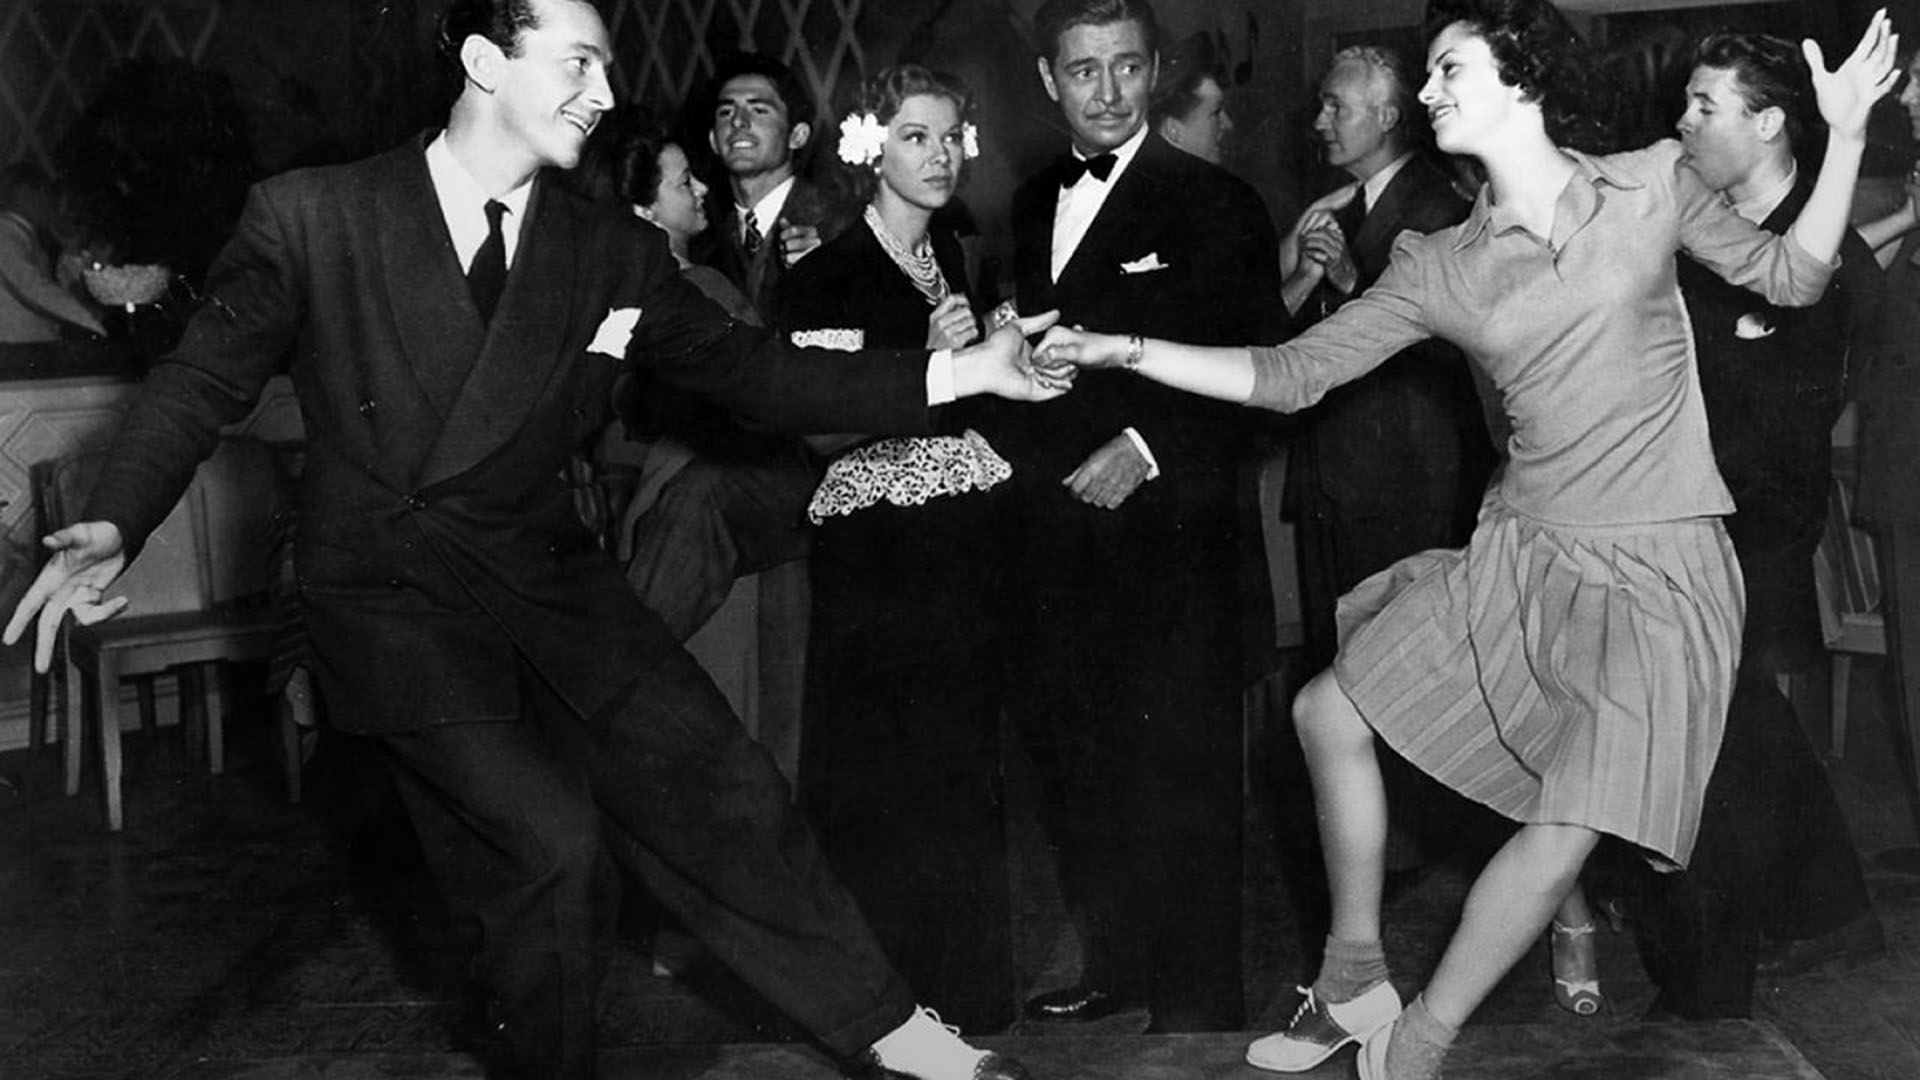 The Diversity of Swing Dance